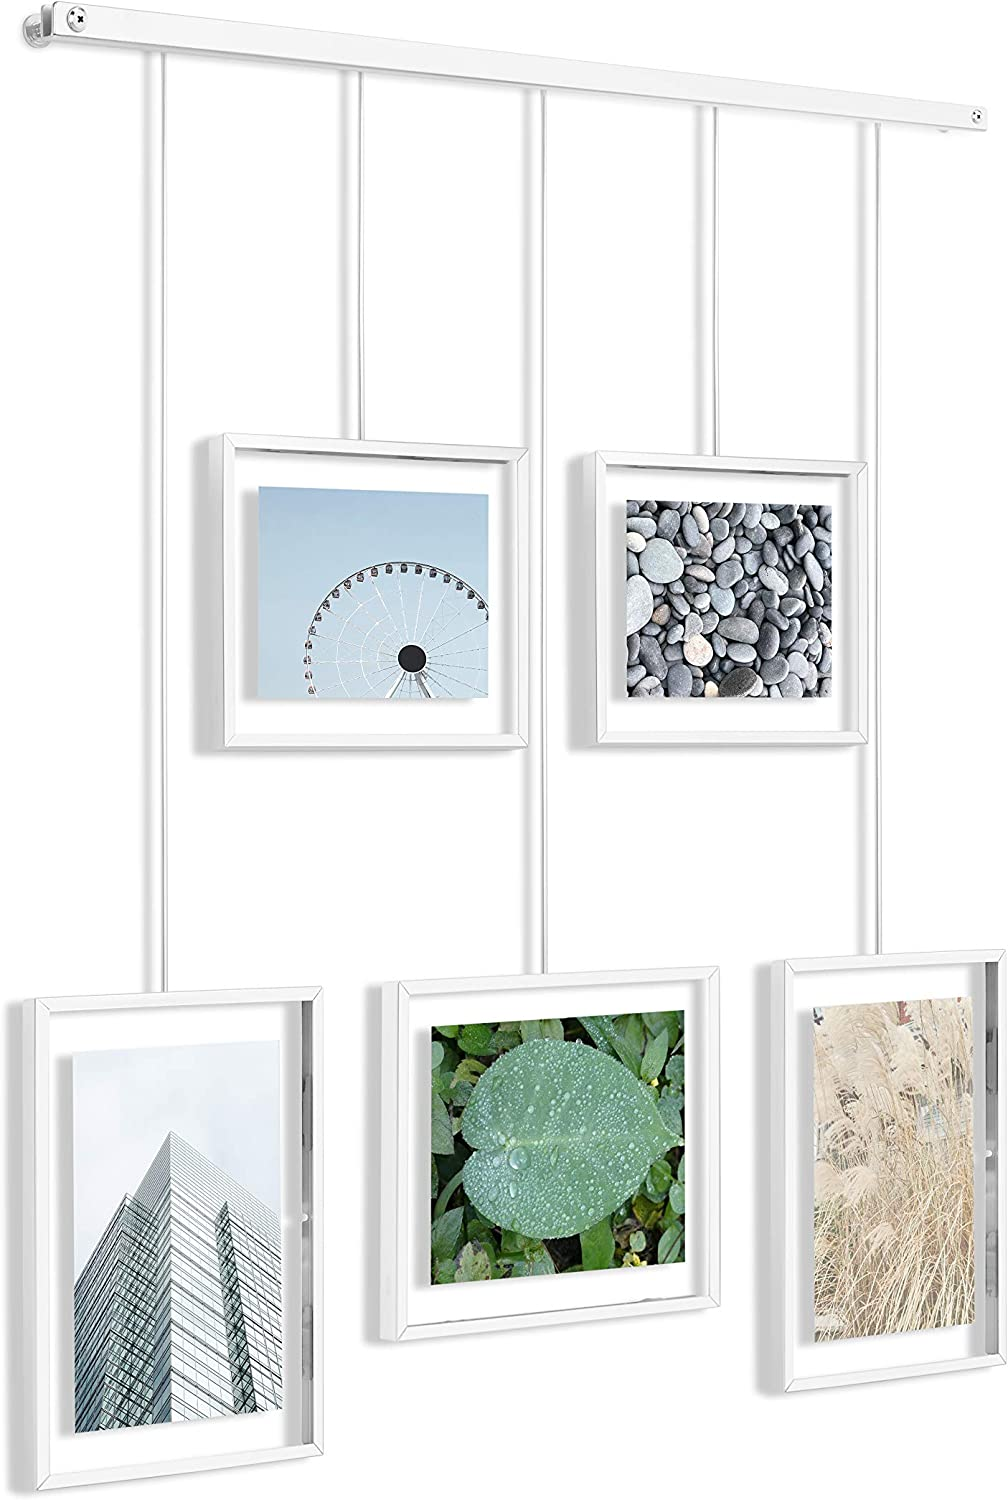 Umbra Exhibit Picture Frame Gallery Set Adjustable Collage Display for 5 Photos, Prints, Artwork & More (Holds Two 4 x 6 inch and Three 5 x 7 inch Images), White